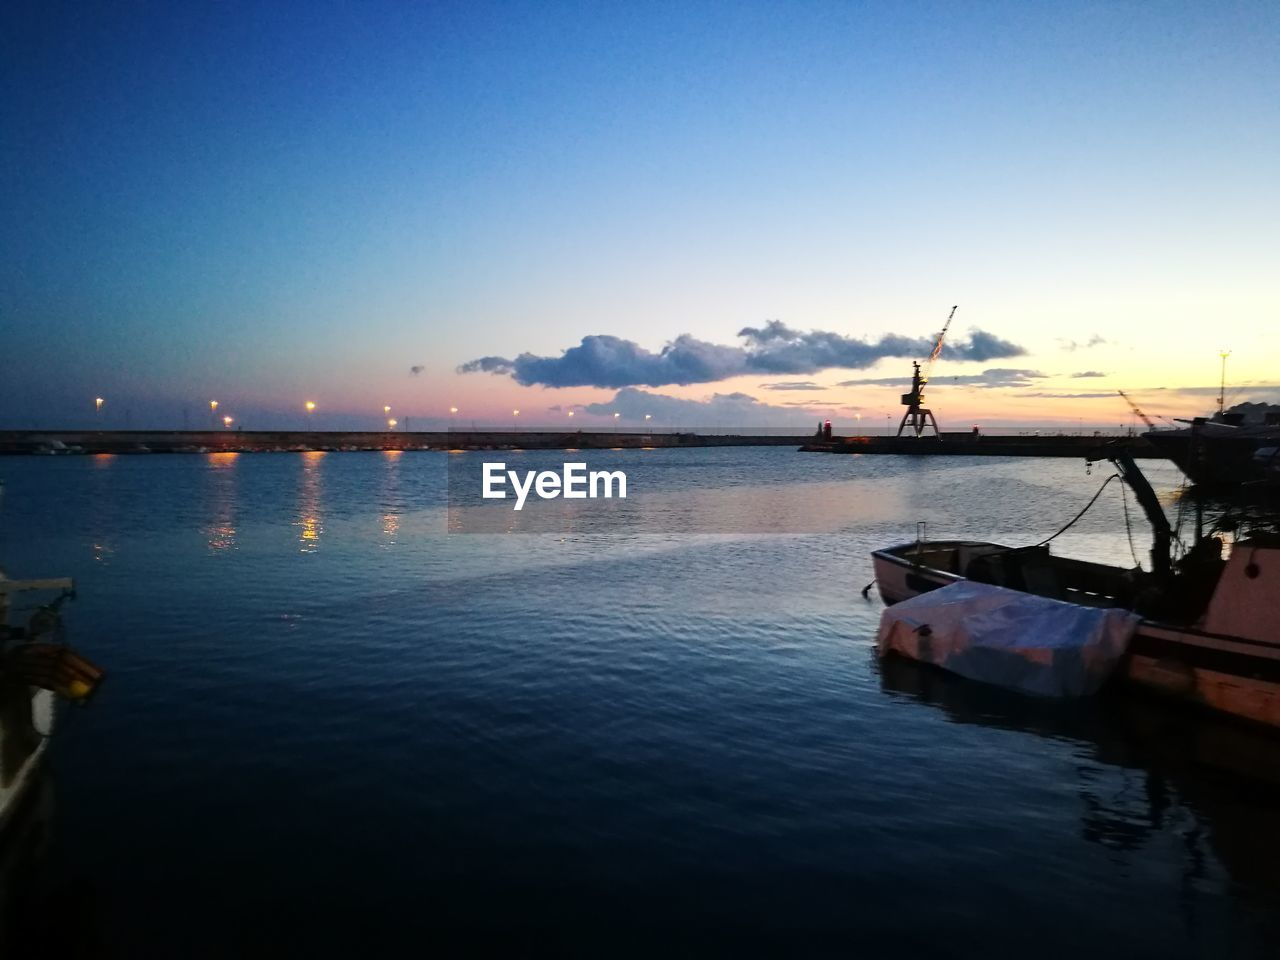 water, nautical vessel, sunset, transportation, sky, reflection, mode of transport, nature, sea, waterfront, beauty in nature, tranquility, scenics, tranquil scene, outdoors, moored, silhouette, blue, no people, industry, day